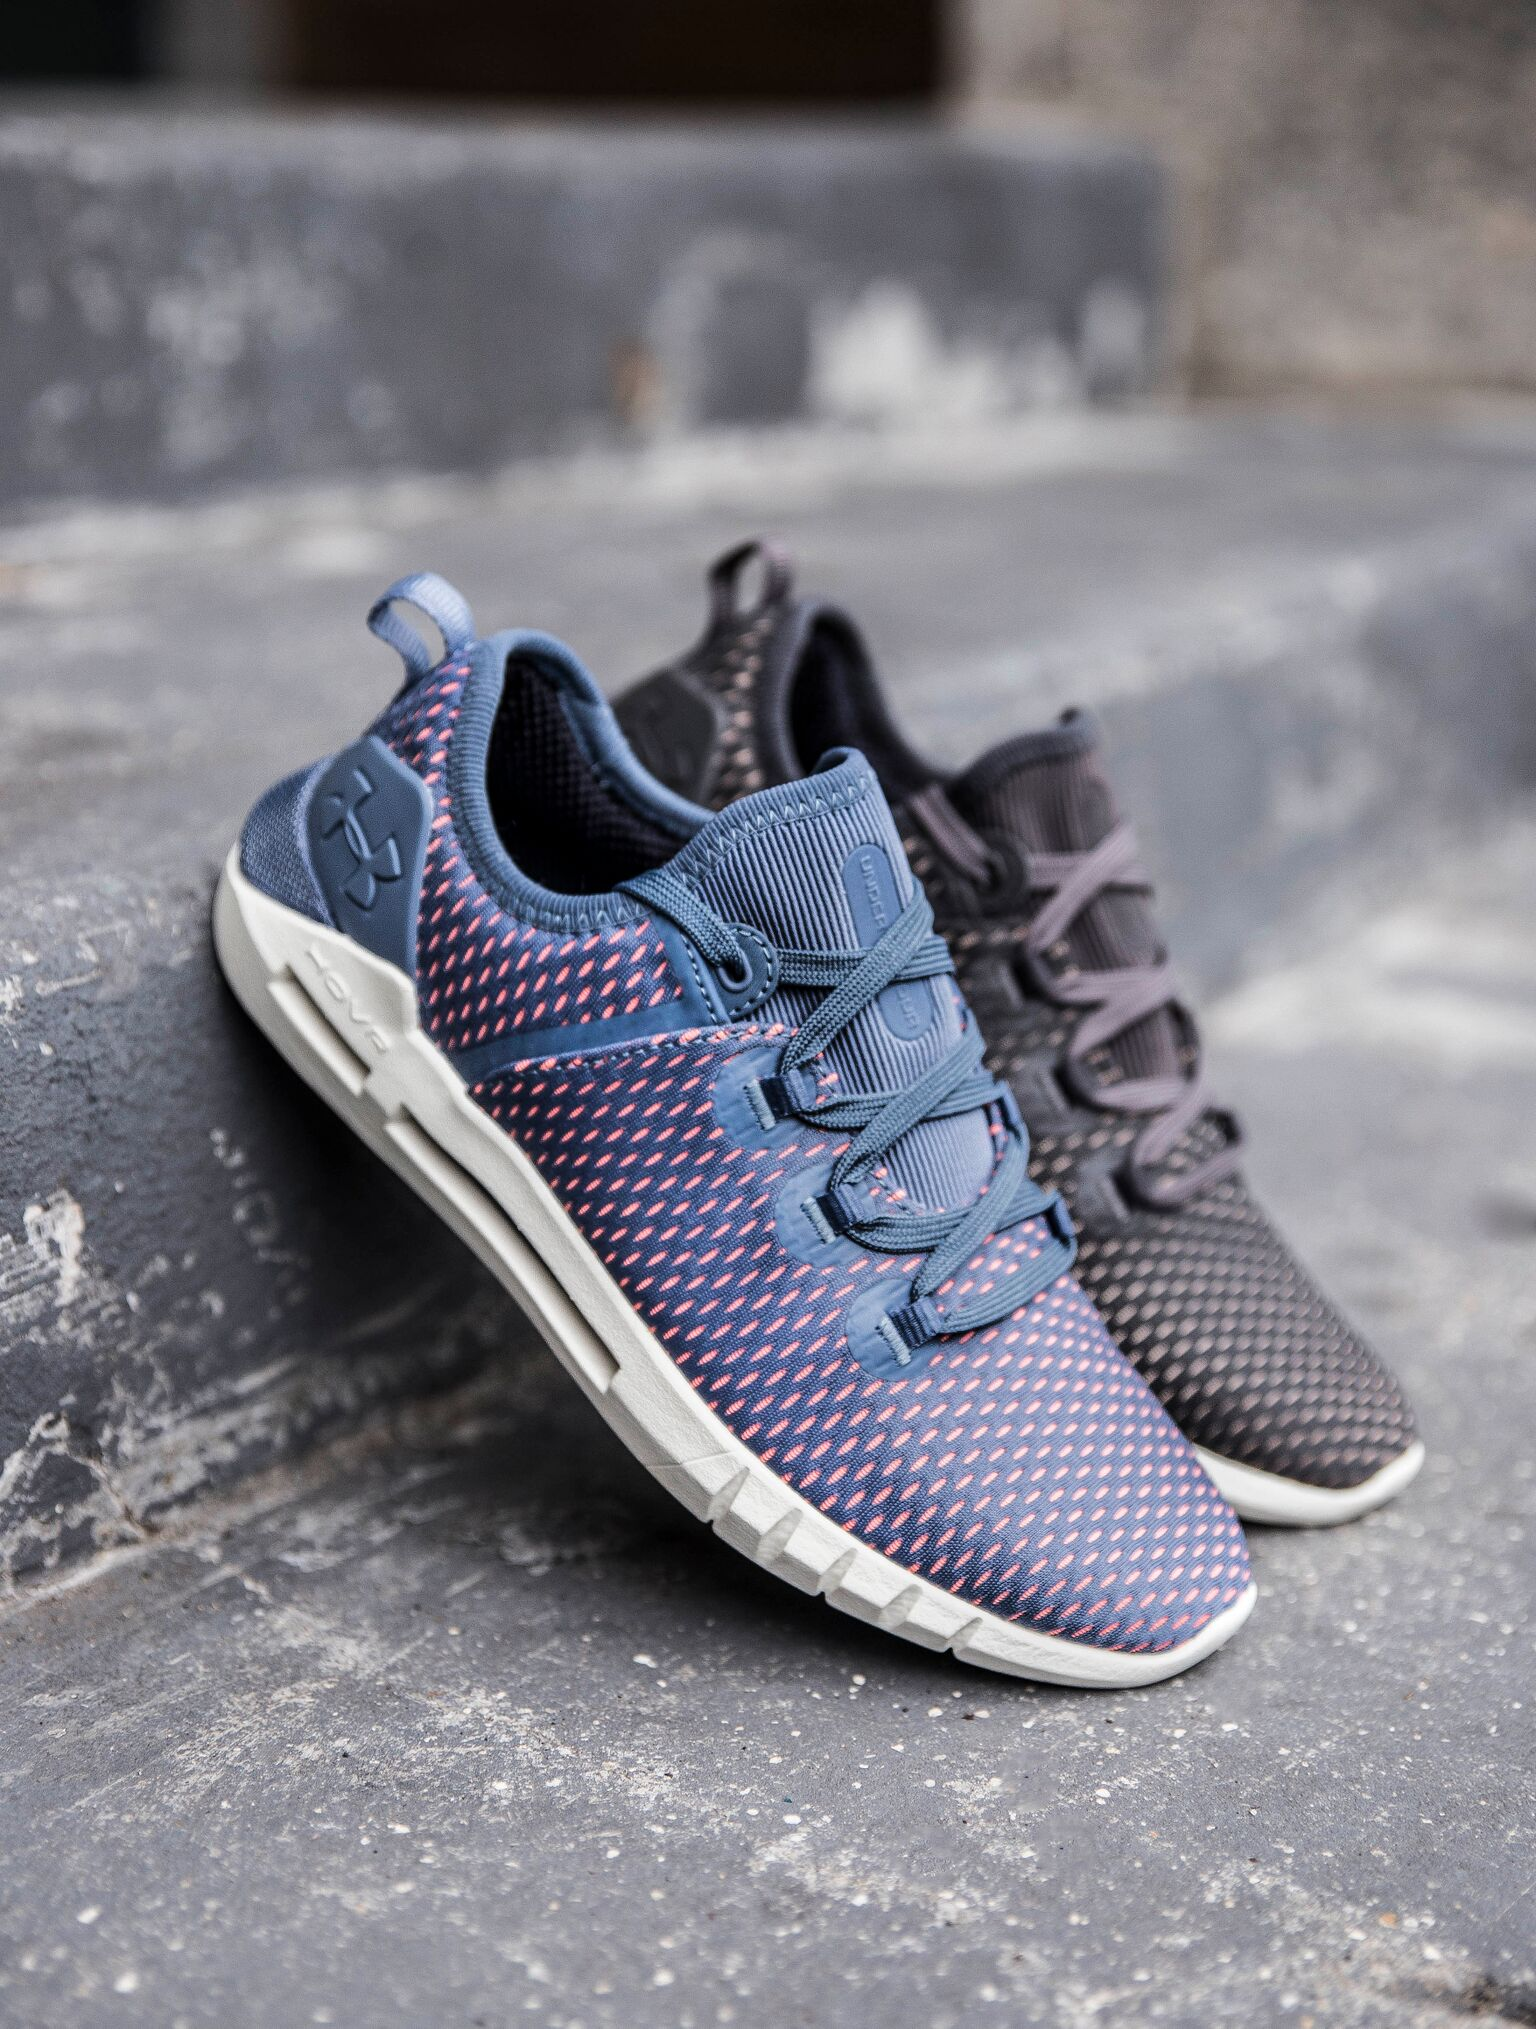 the latest 4be6d 46586 The Under Armour HOVR SLK Gets New Builds in Urban Nature ...